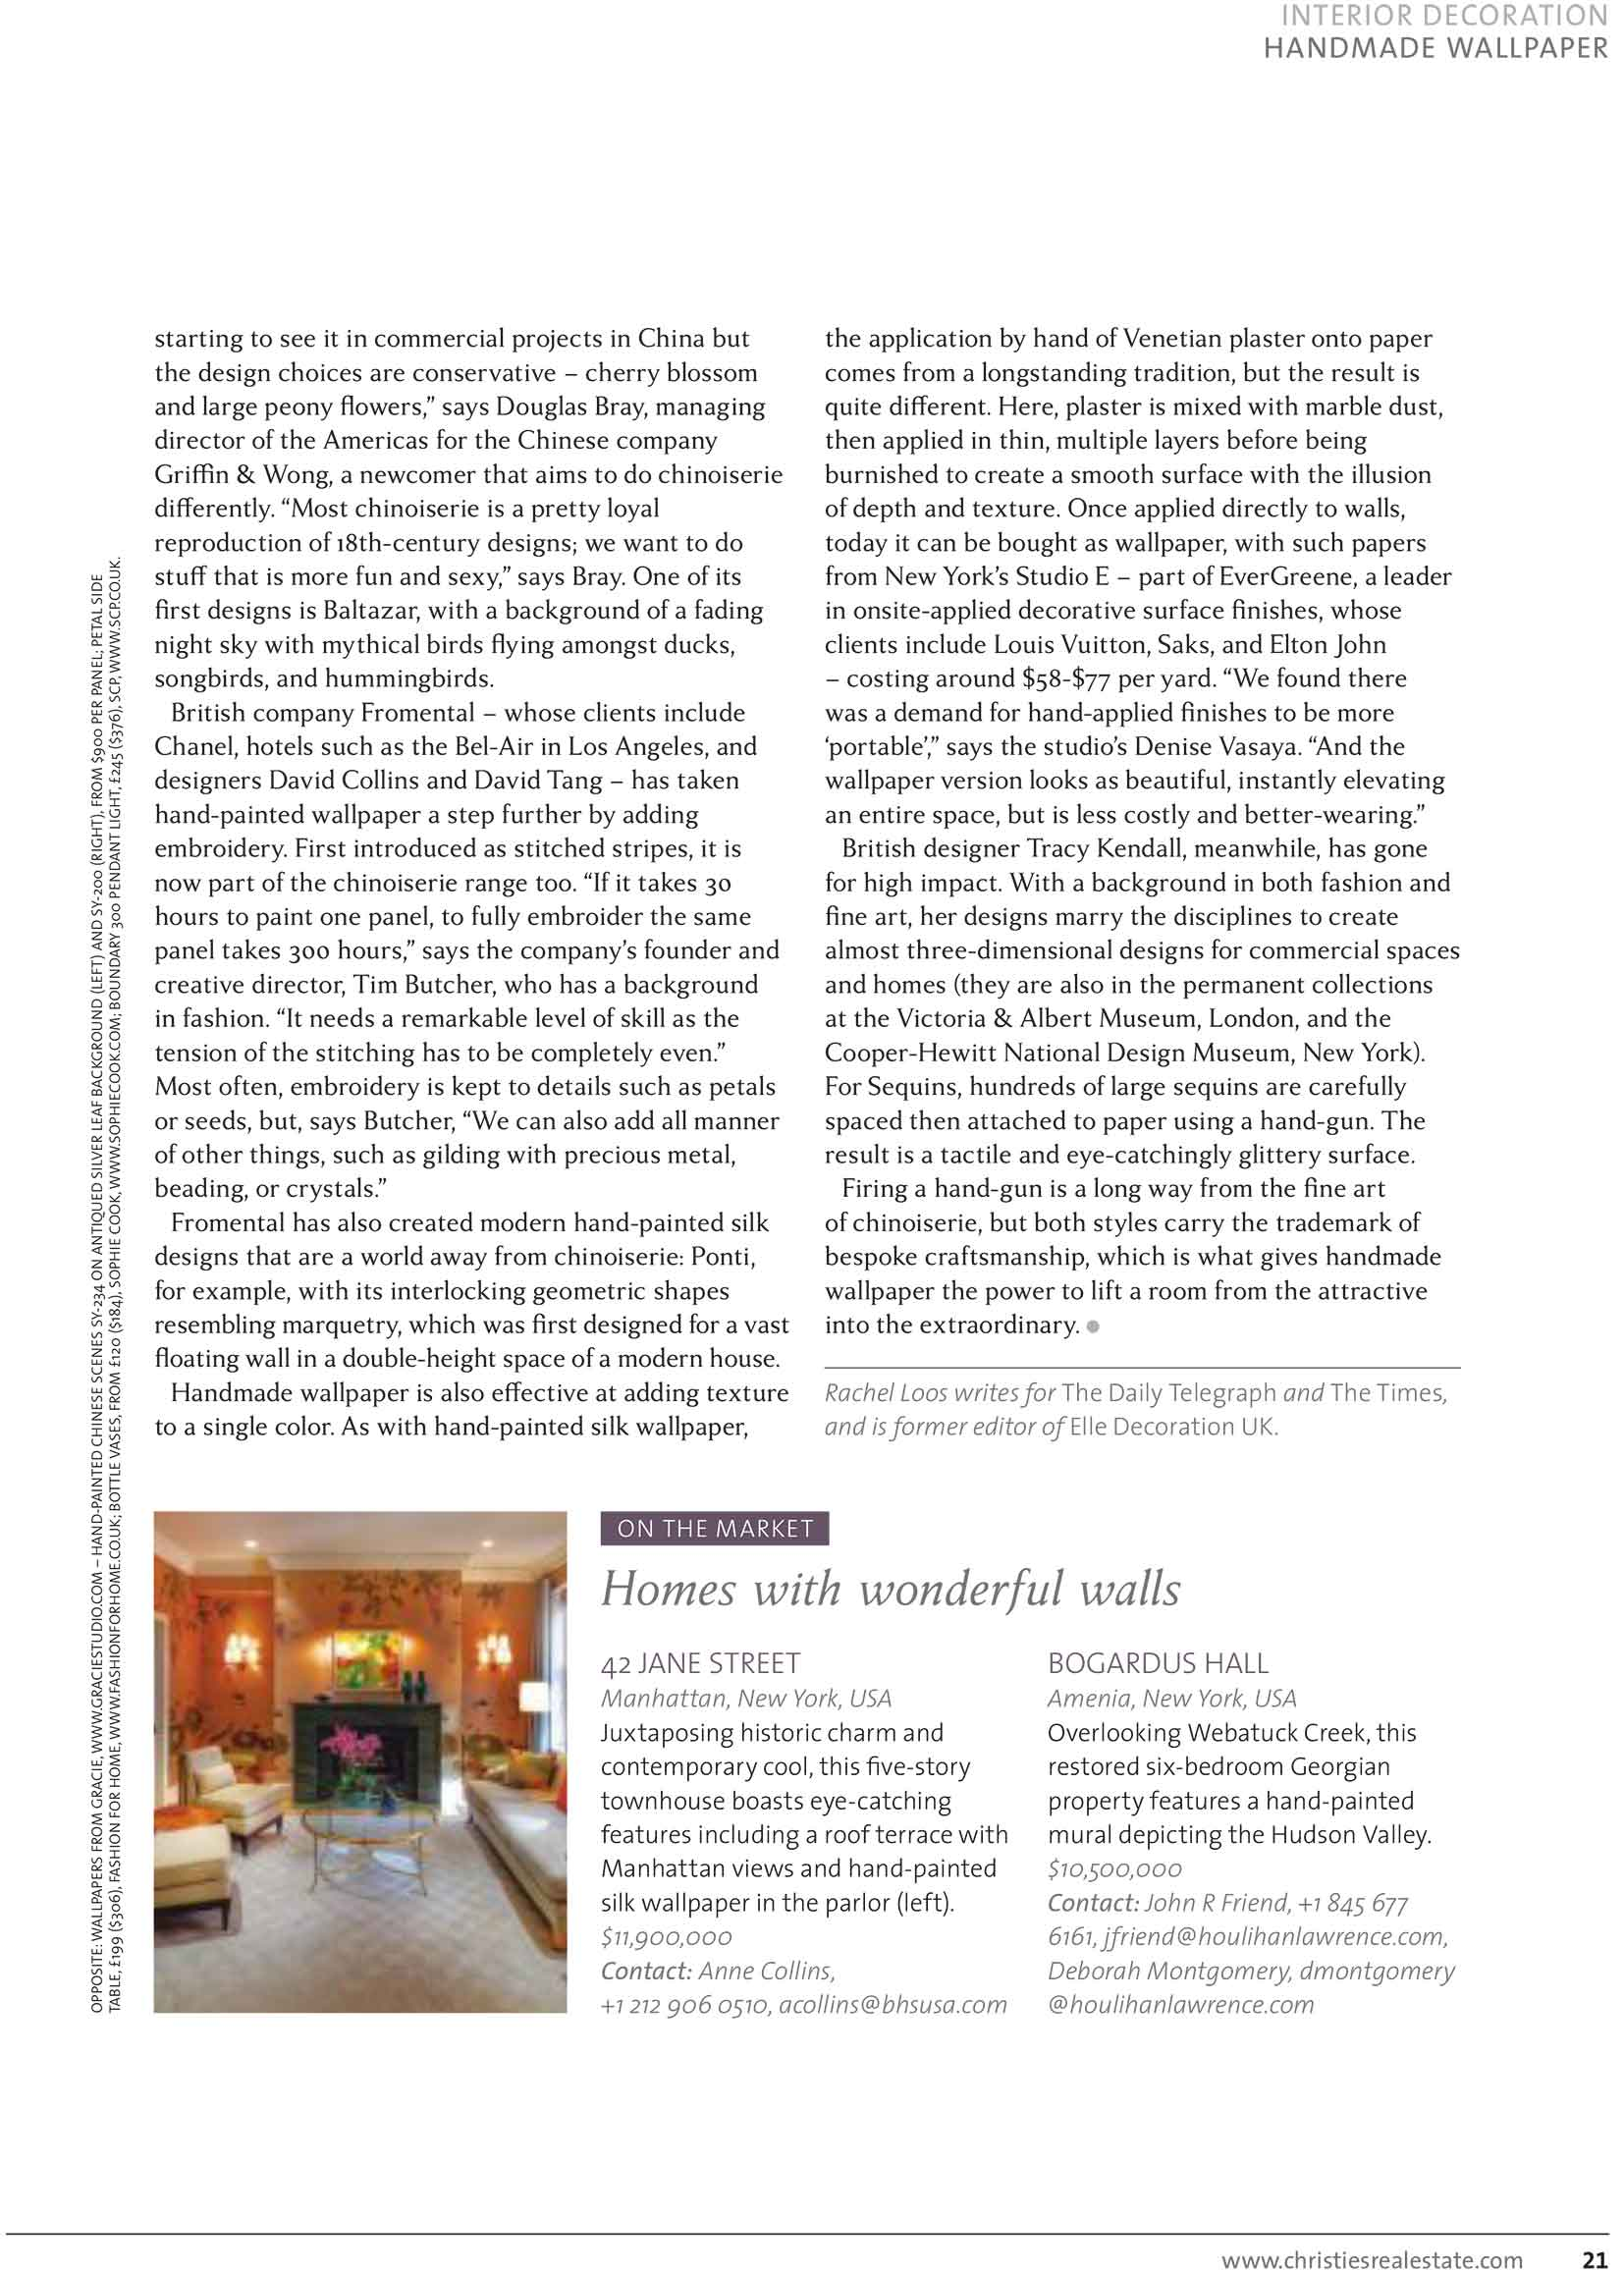 Christies-Real-Estate-pages-7